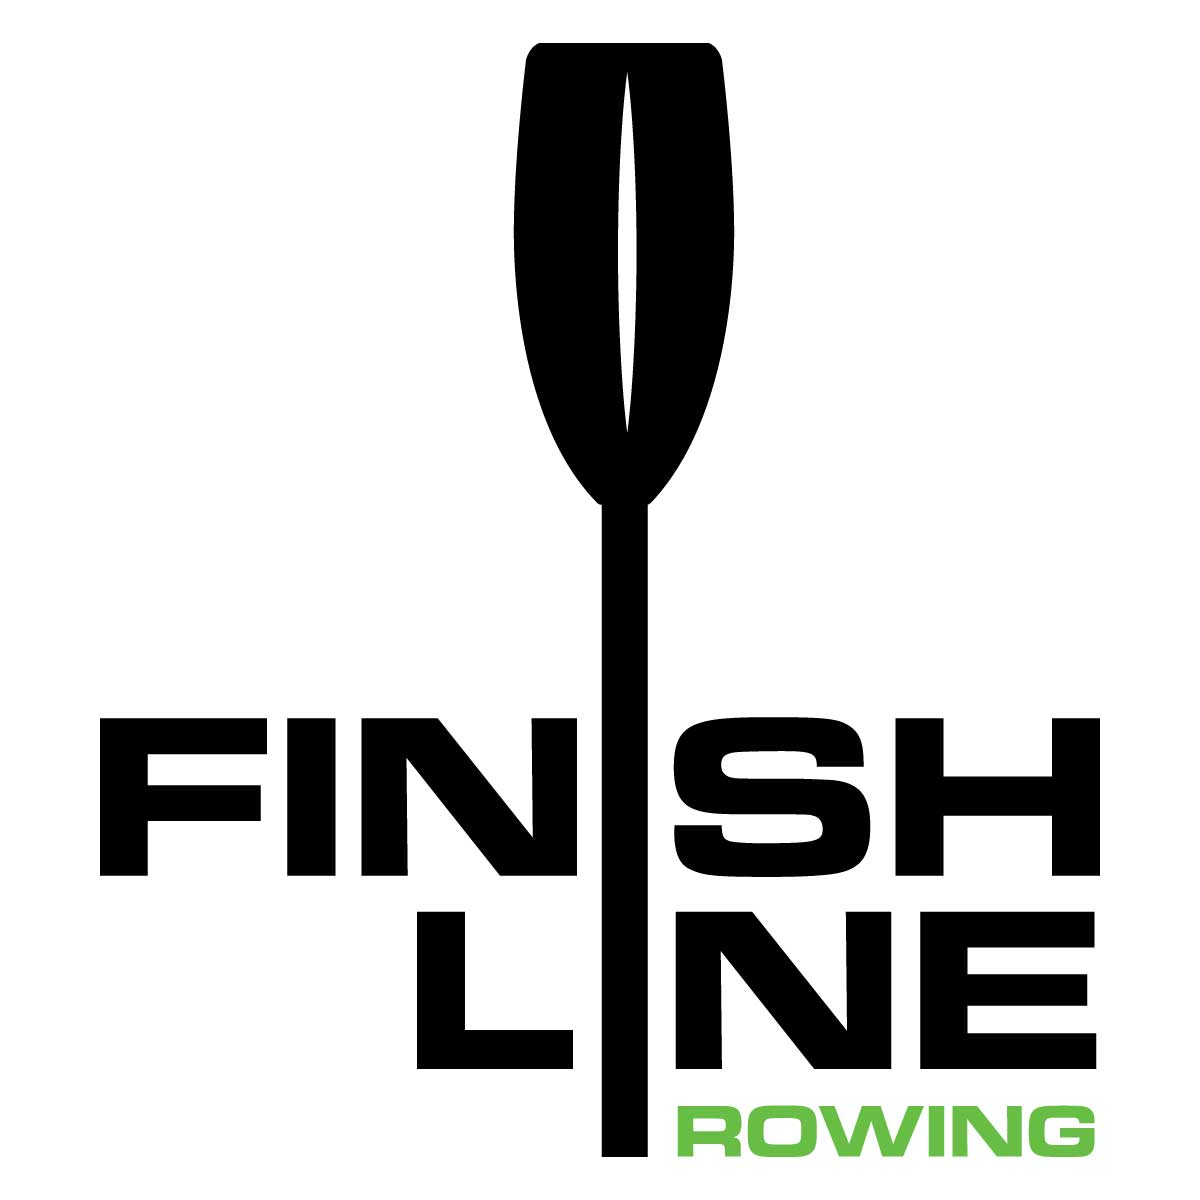 finish-line-rowing-shell-repair-company-maryland.jpg